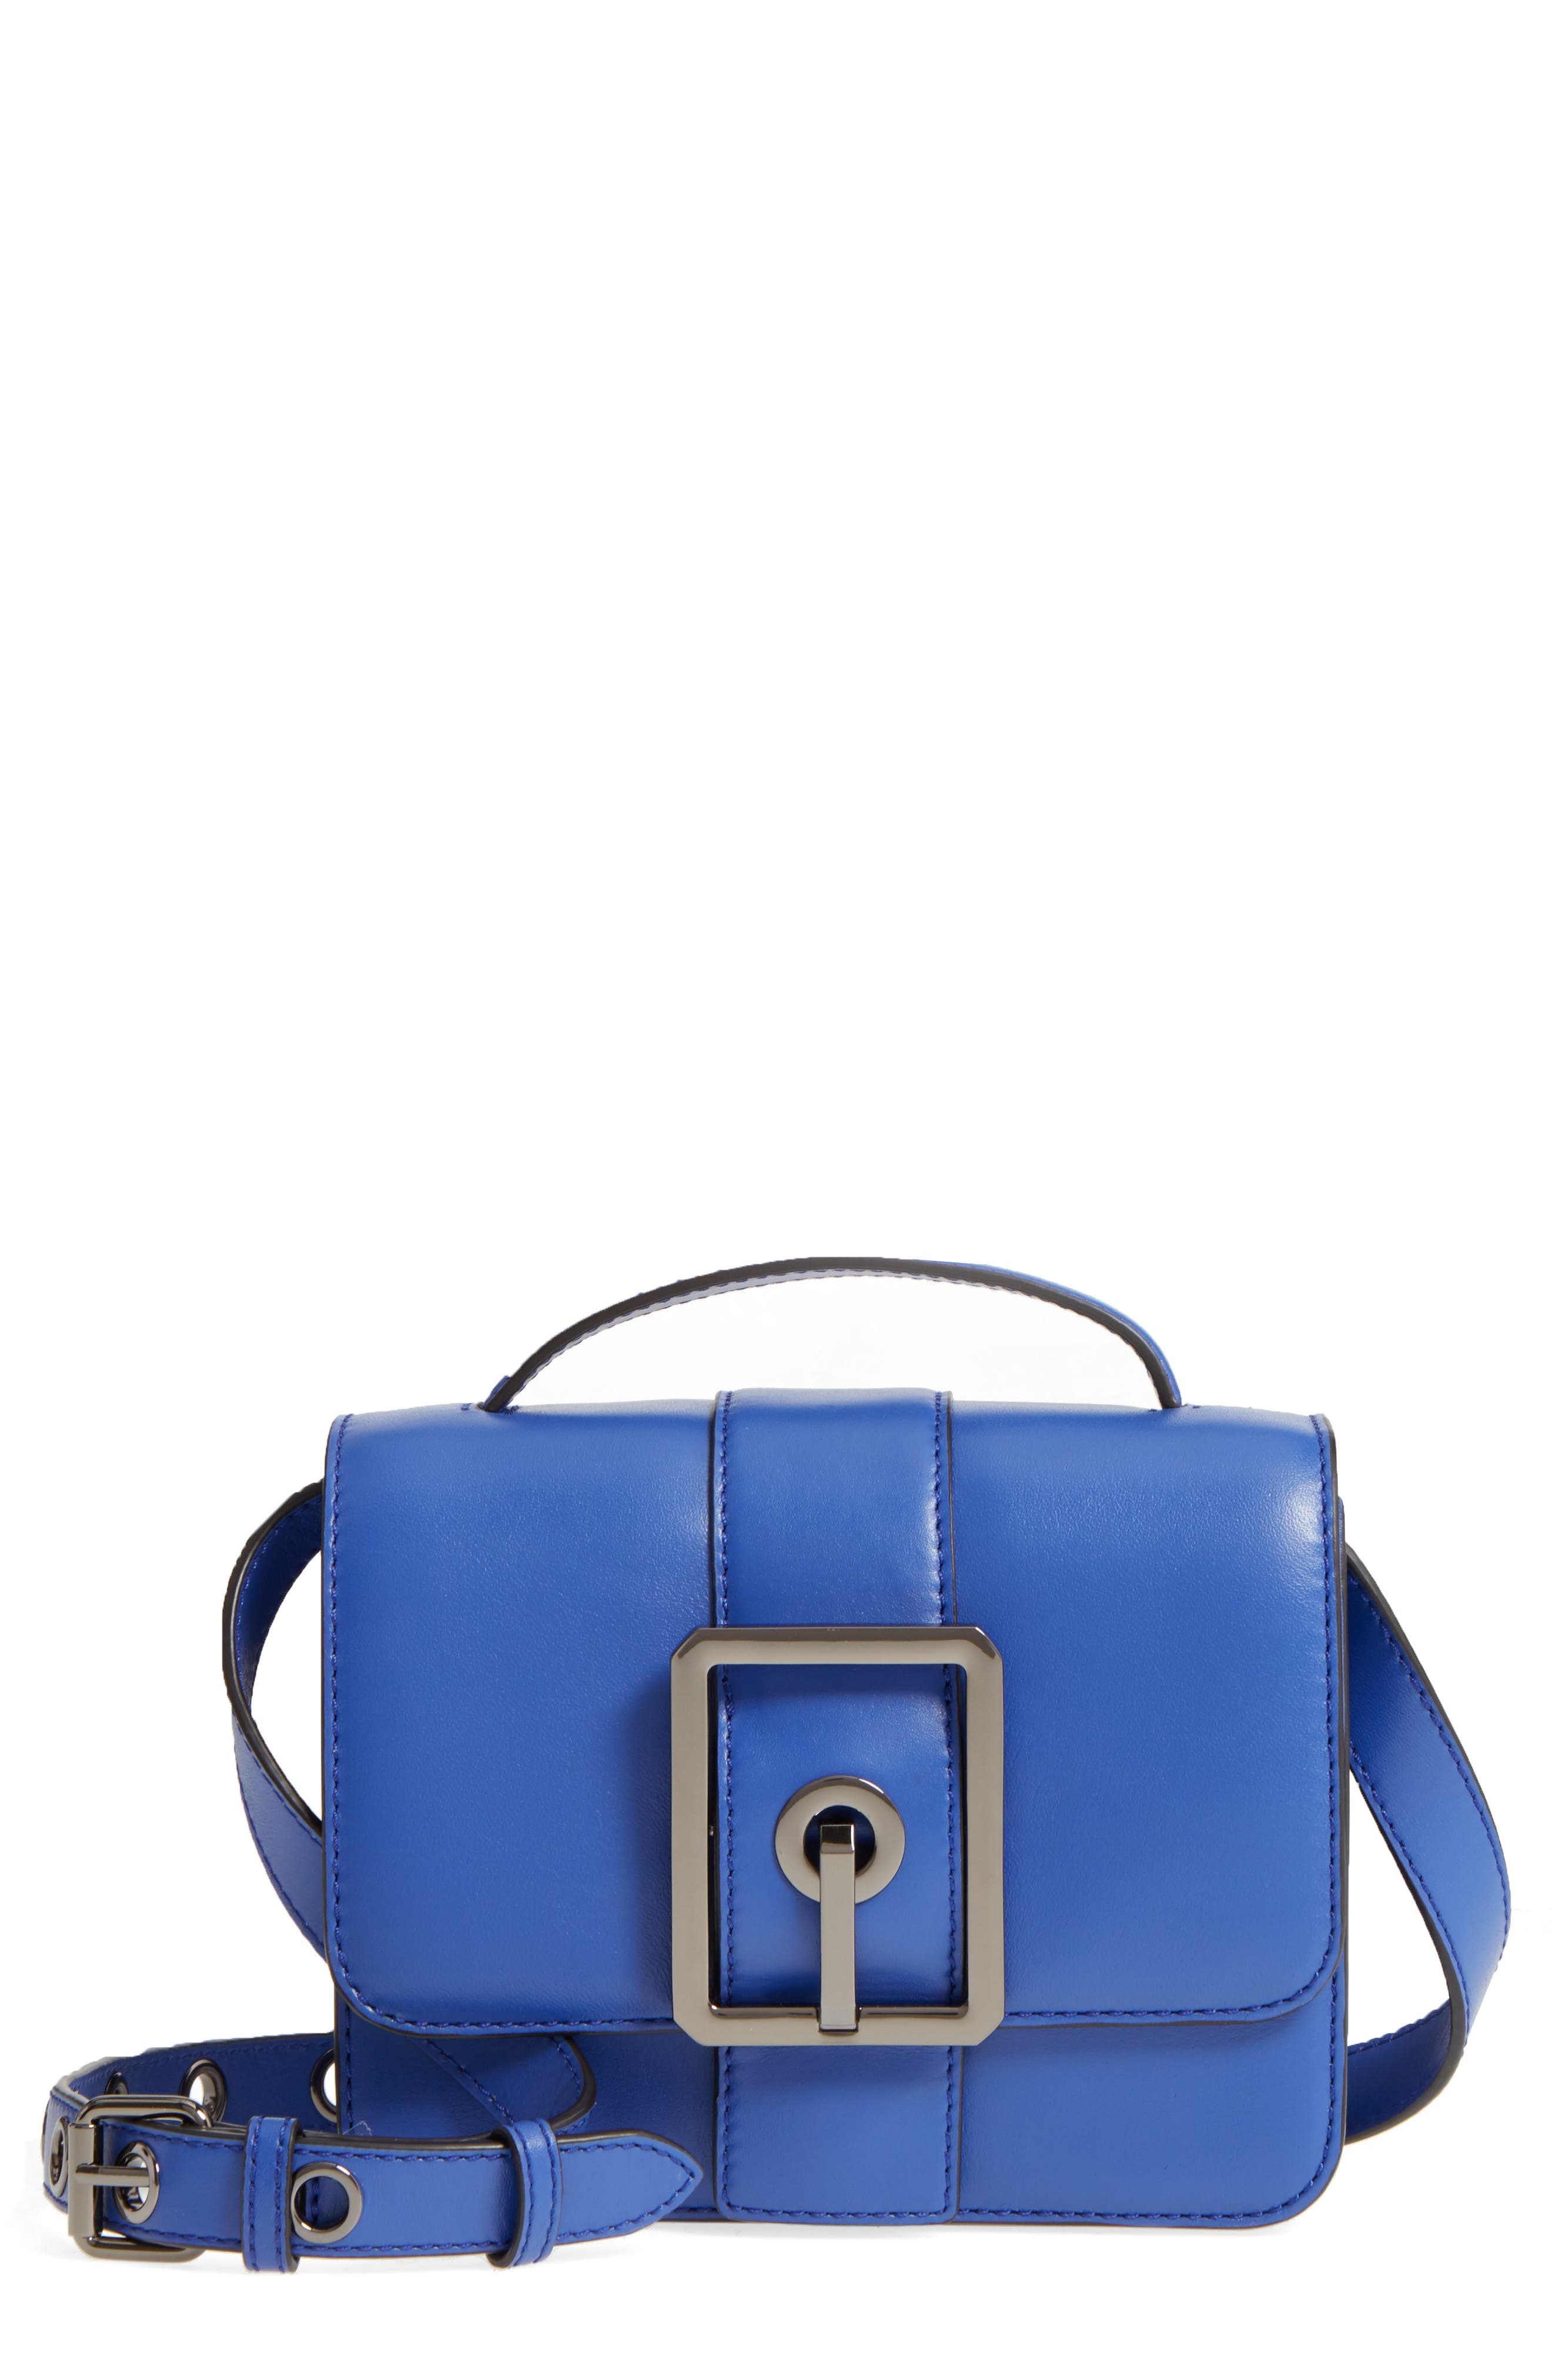 Rebecca Minkoff Small Hook Up Leather Top Handle Satchel